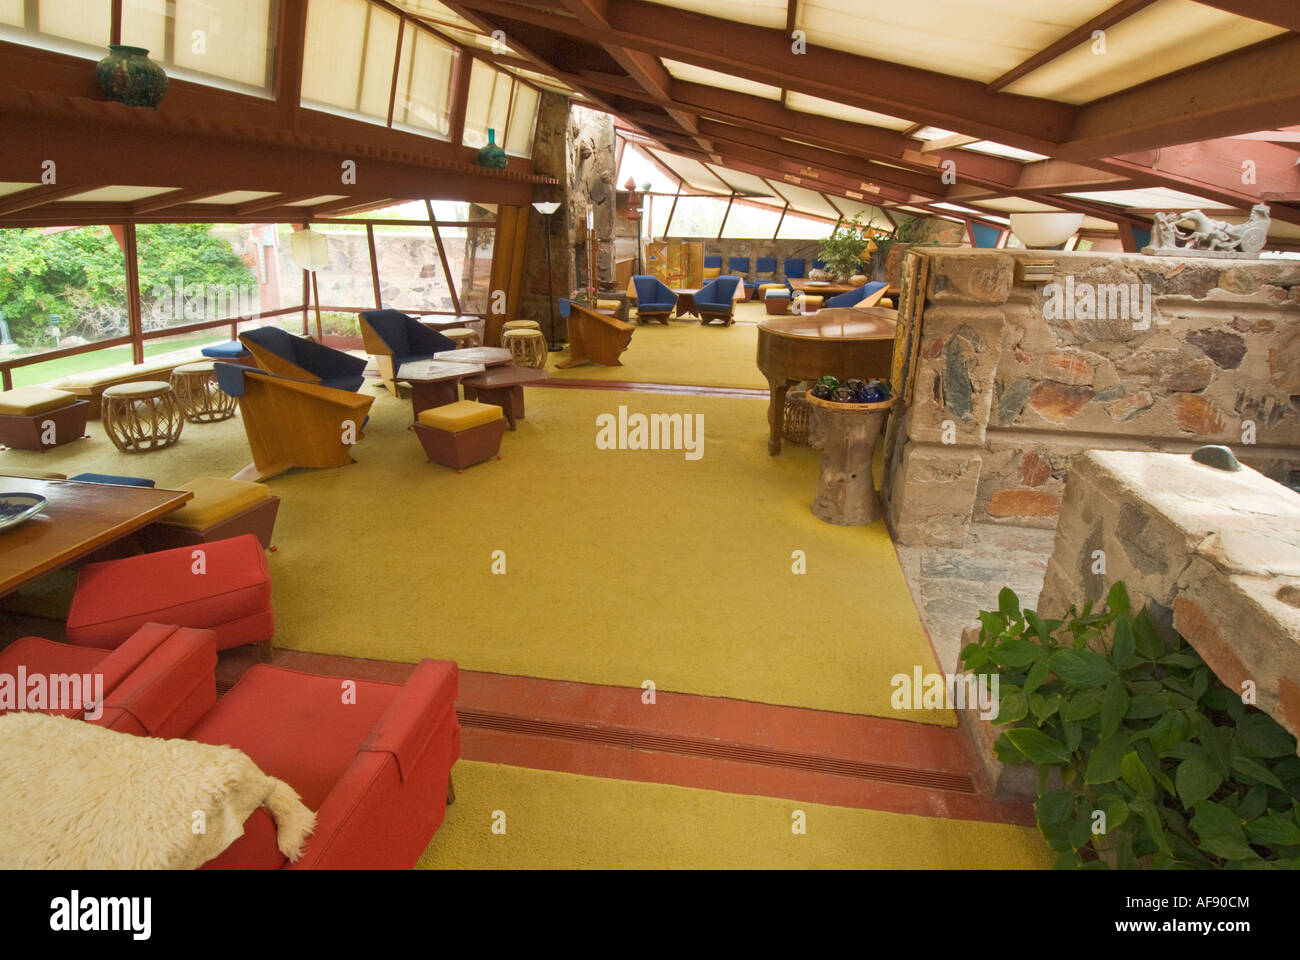 Arizona scottsdale taliesin west architect frank lloyd wright winter home and studio living room stock